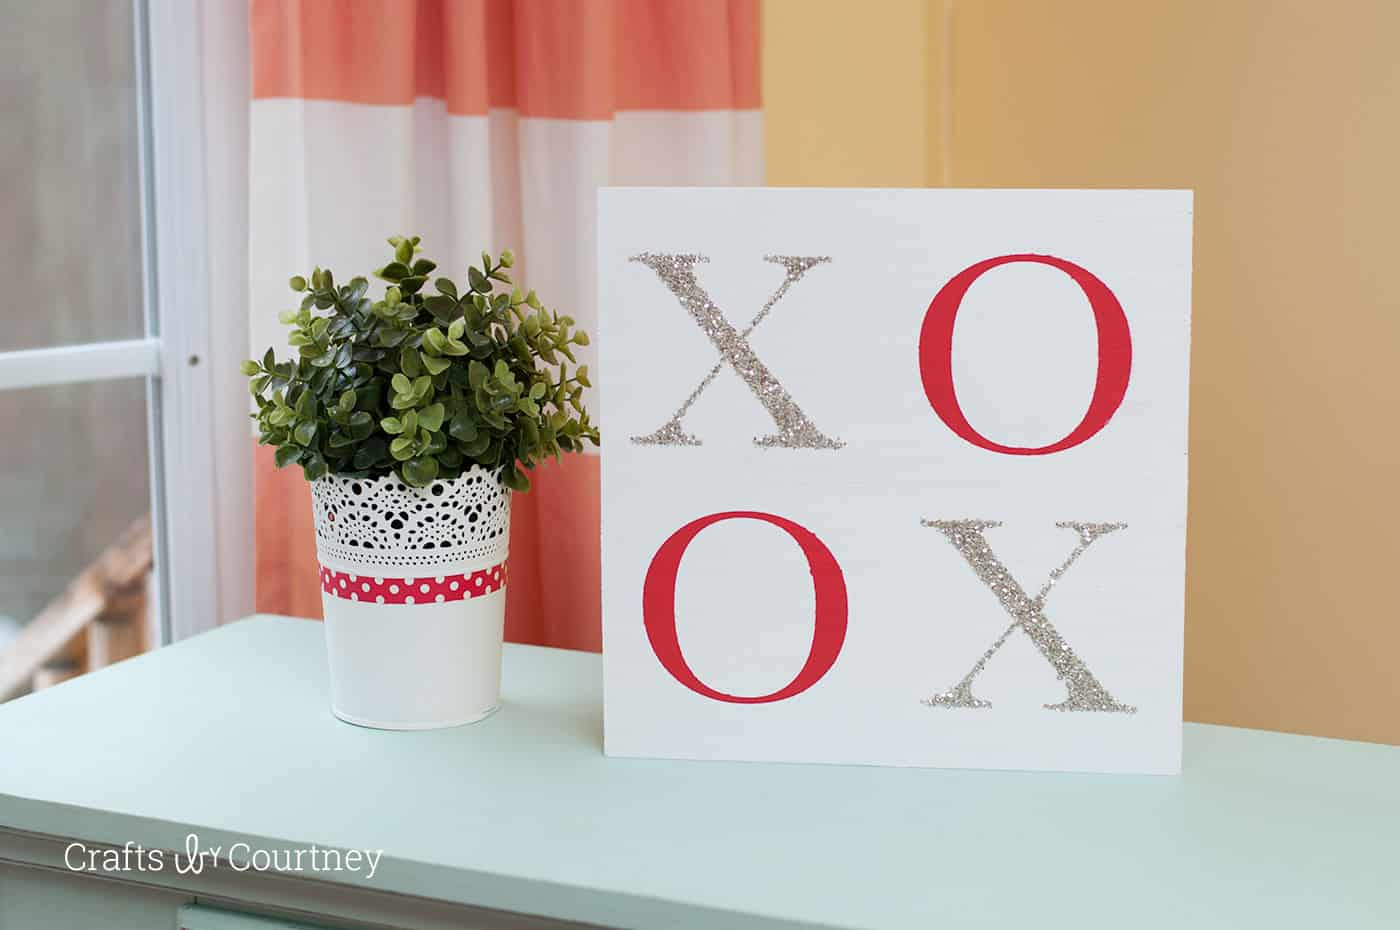 Use Mod Podge and glitter to make this sparkly Valentine's Day sign - an XOXO sign that will look great displayed on a table or mantel! This is REALLY easy to make.